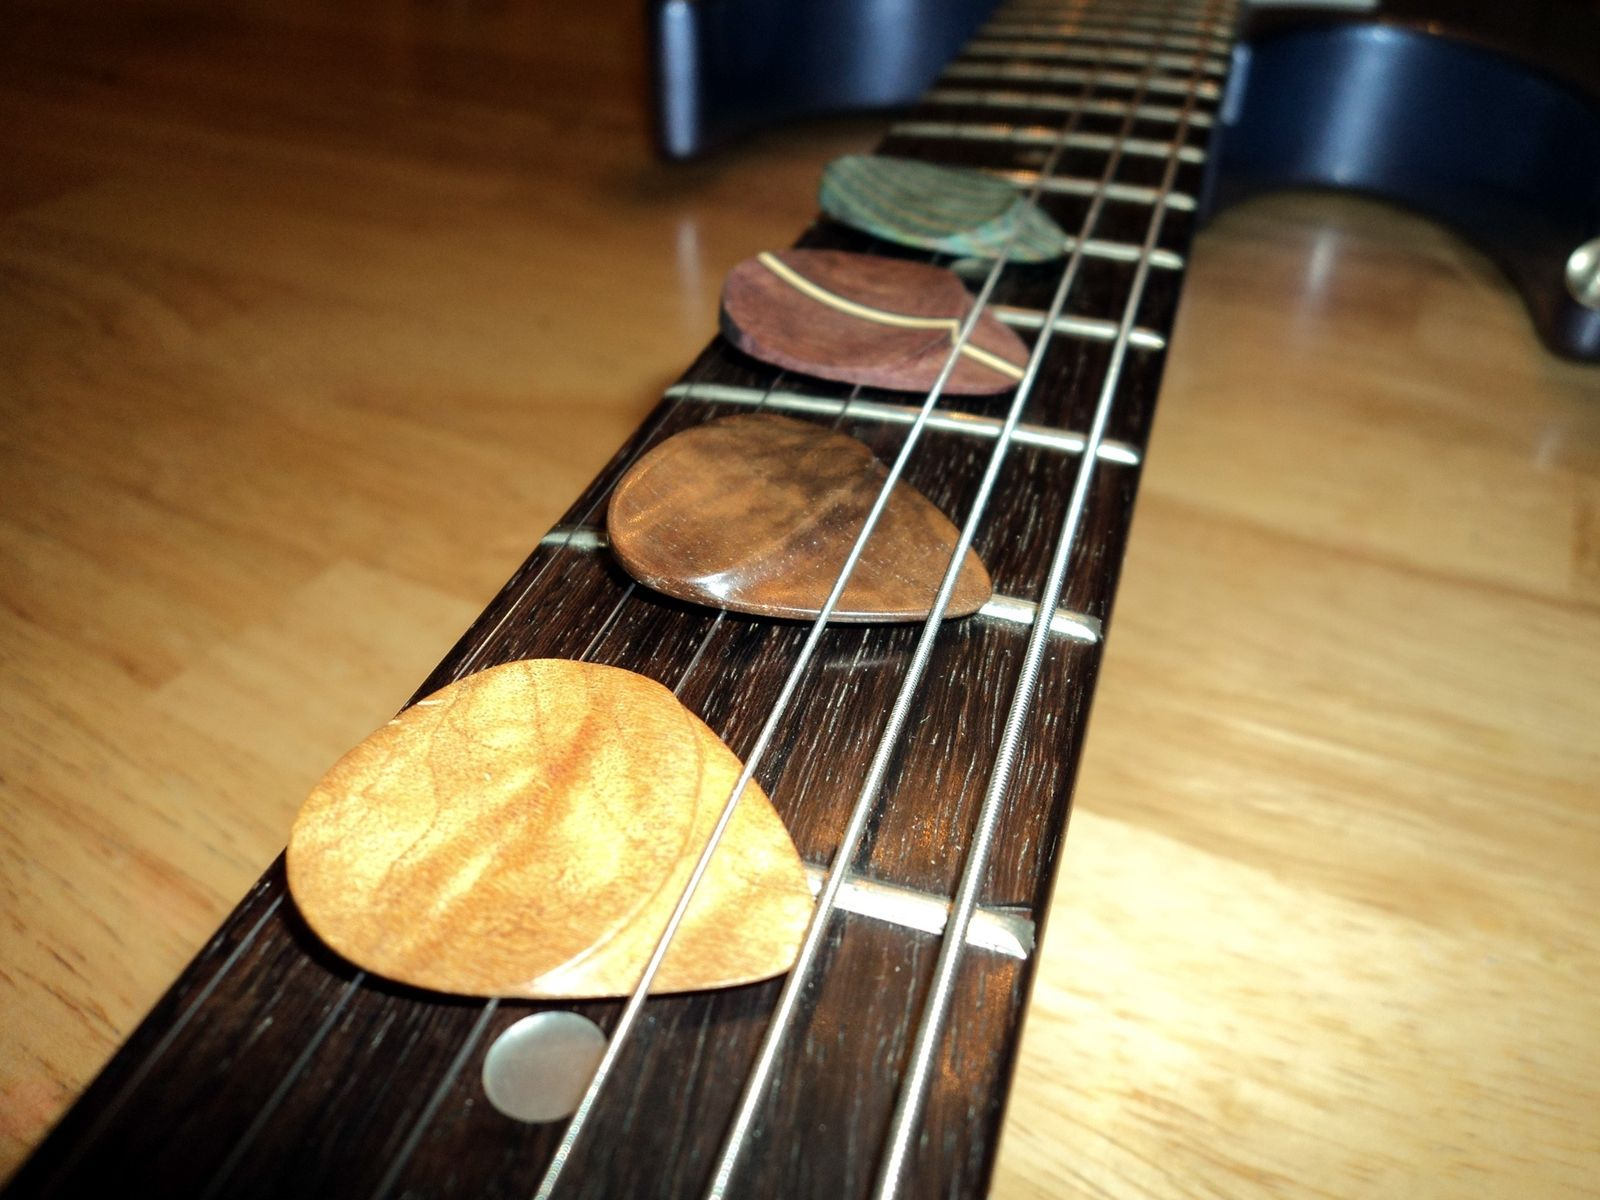 Custom Wooden Guitar Picks With Hand Shaped Thumb Grip by Sandman